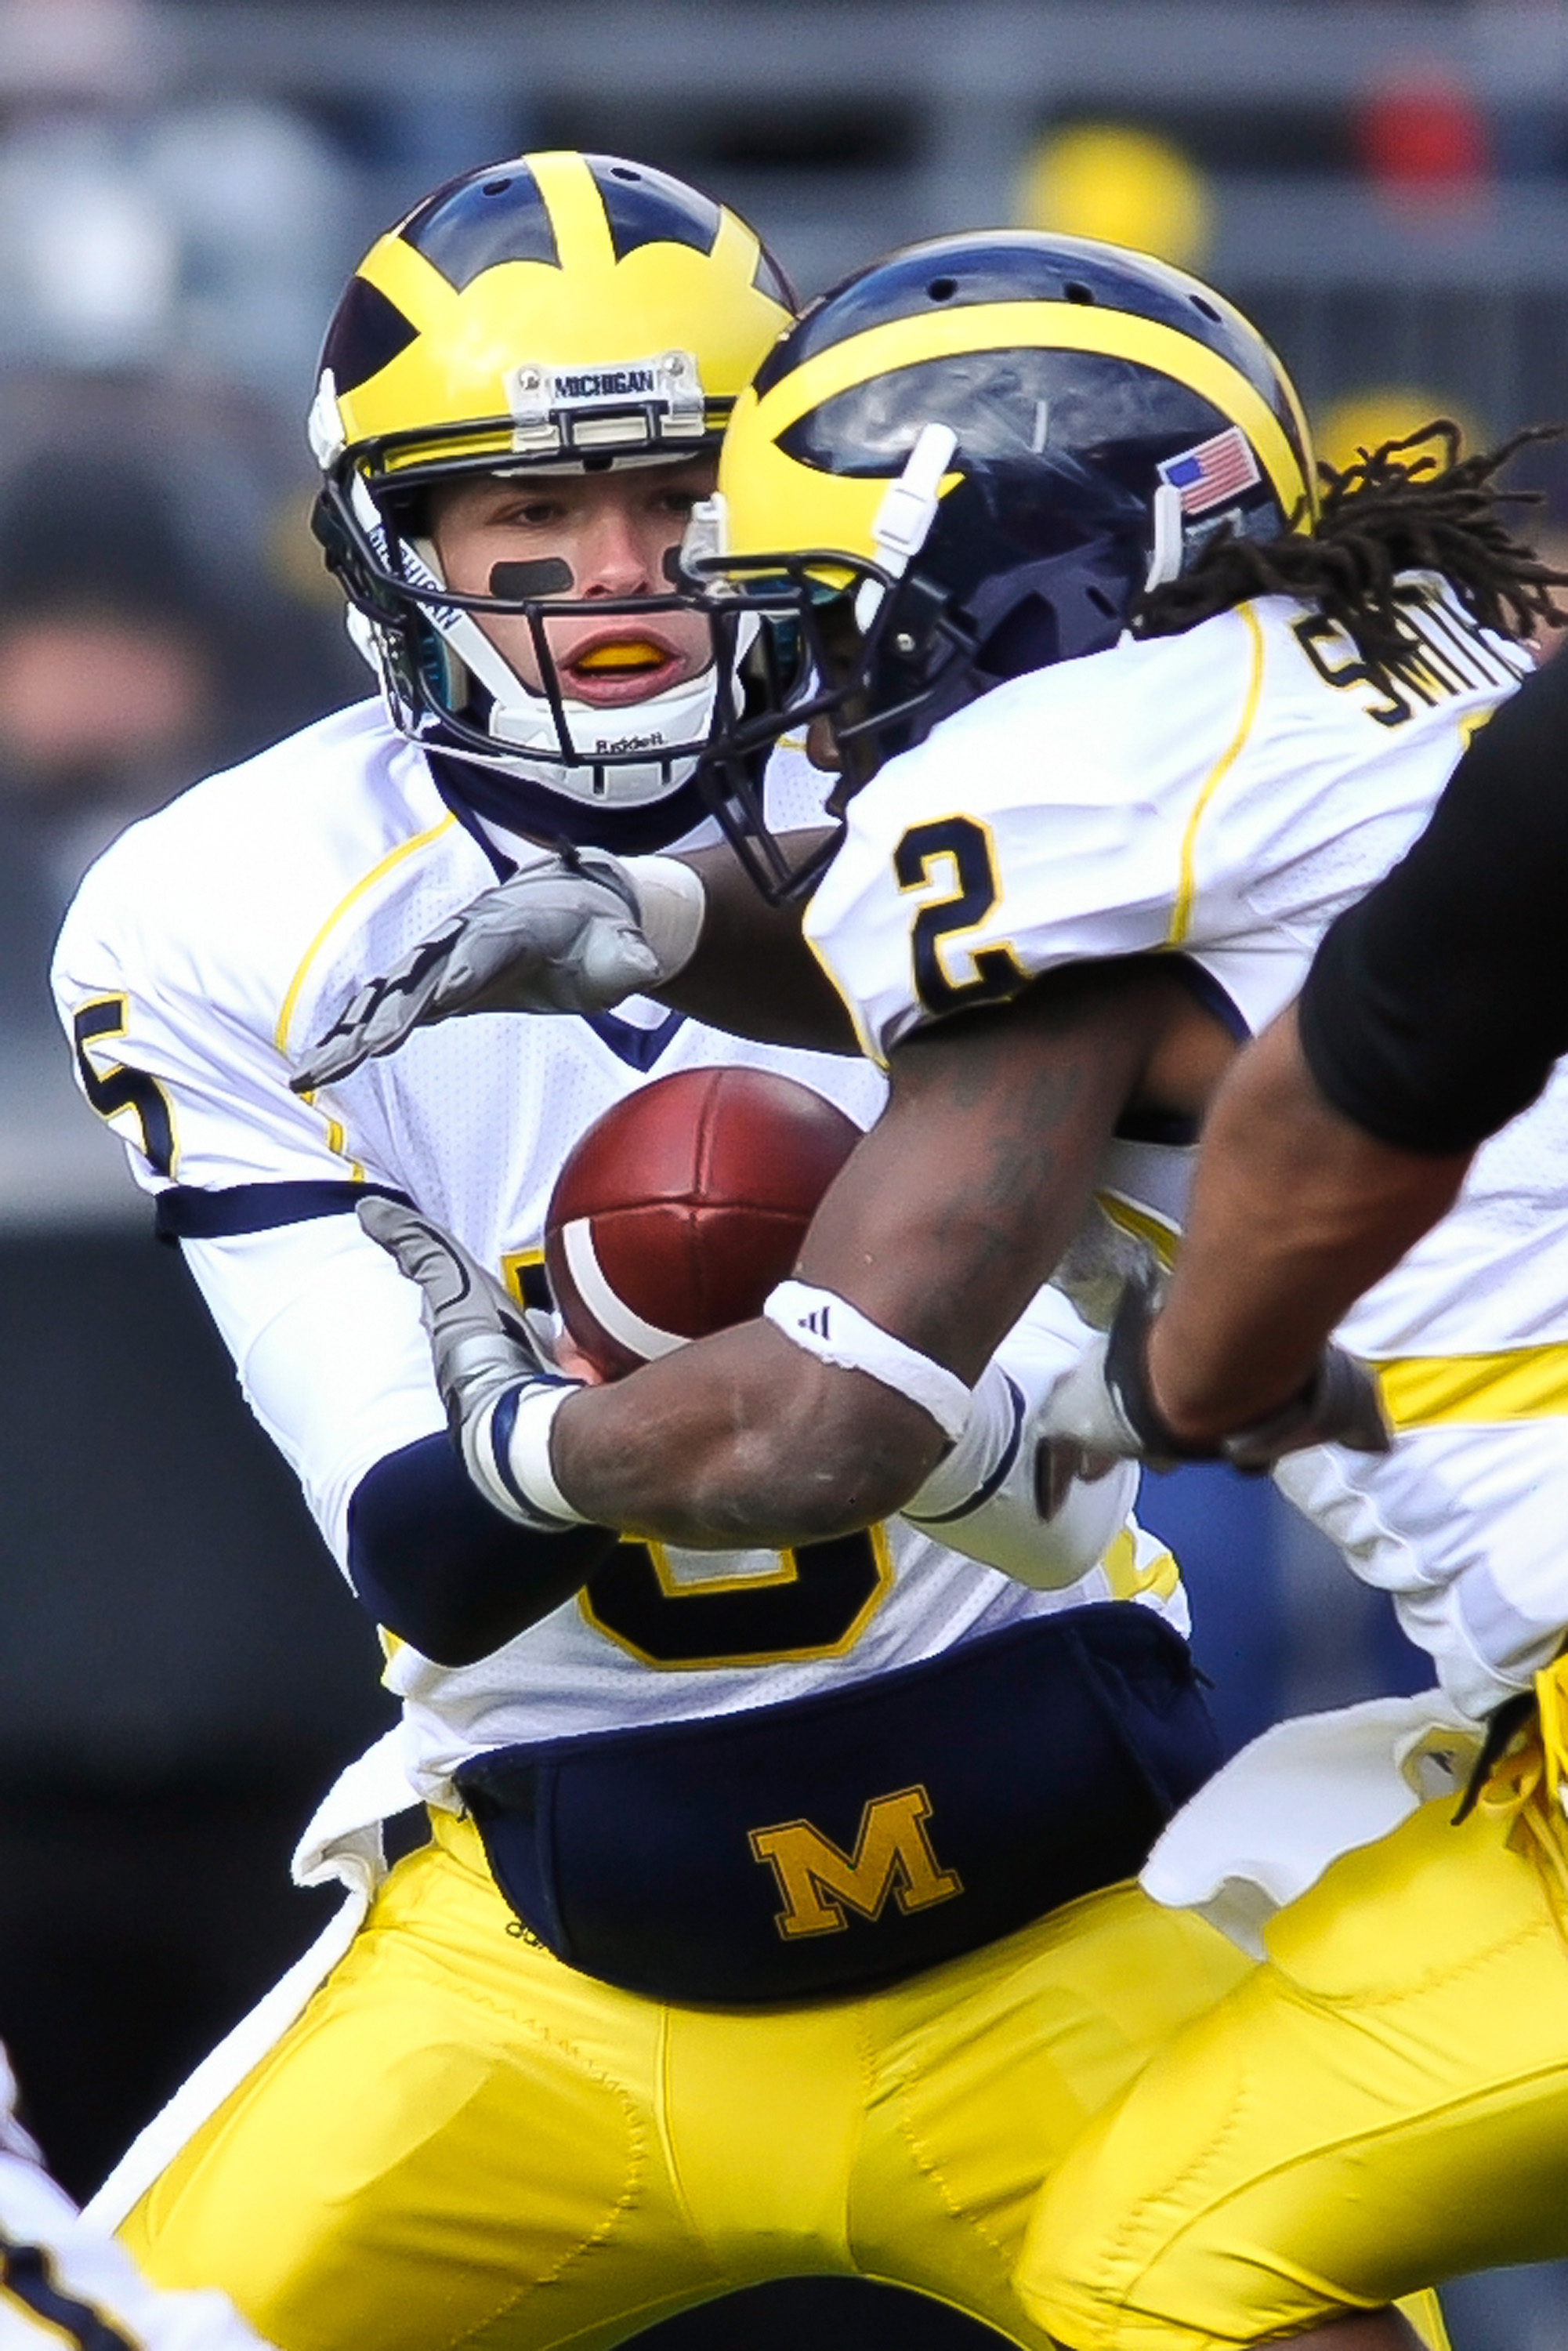 COLUMBUS, OH - NOVEMBER 27:  Quarterback Tate Forcier #5 of the Michigan Wolverines hands off to Vincent Smith #2 of the Michigan Wolverines against the Ohio State Buckeyes at Ohio Stadium on November 27, 2010 in Columbus, Ohio.  (Photo by Jamie Sabau/Get